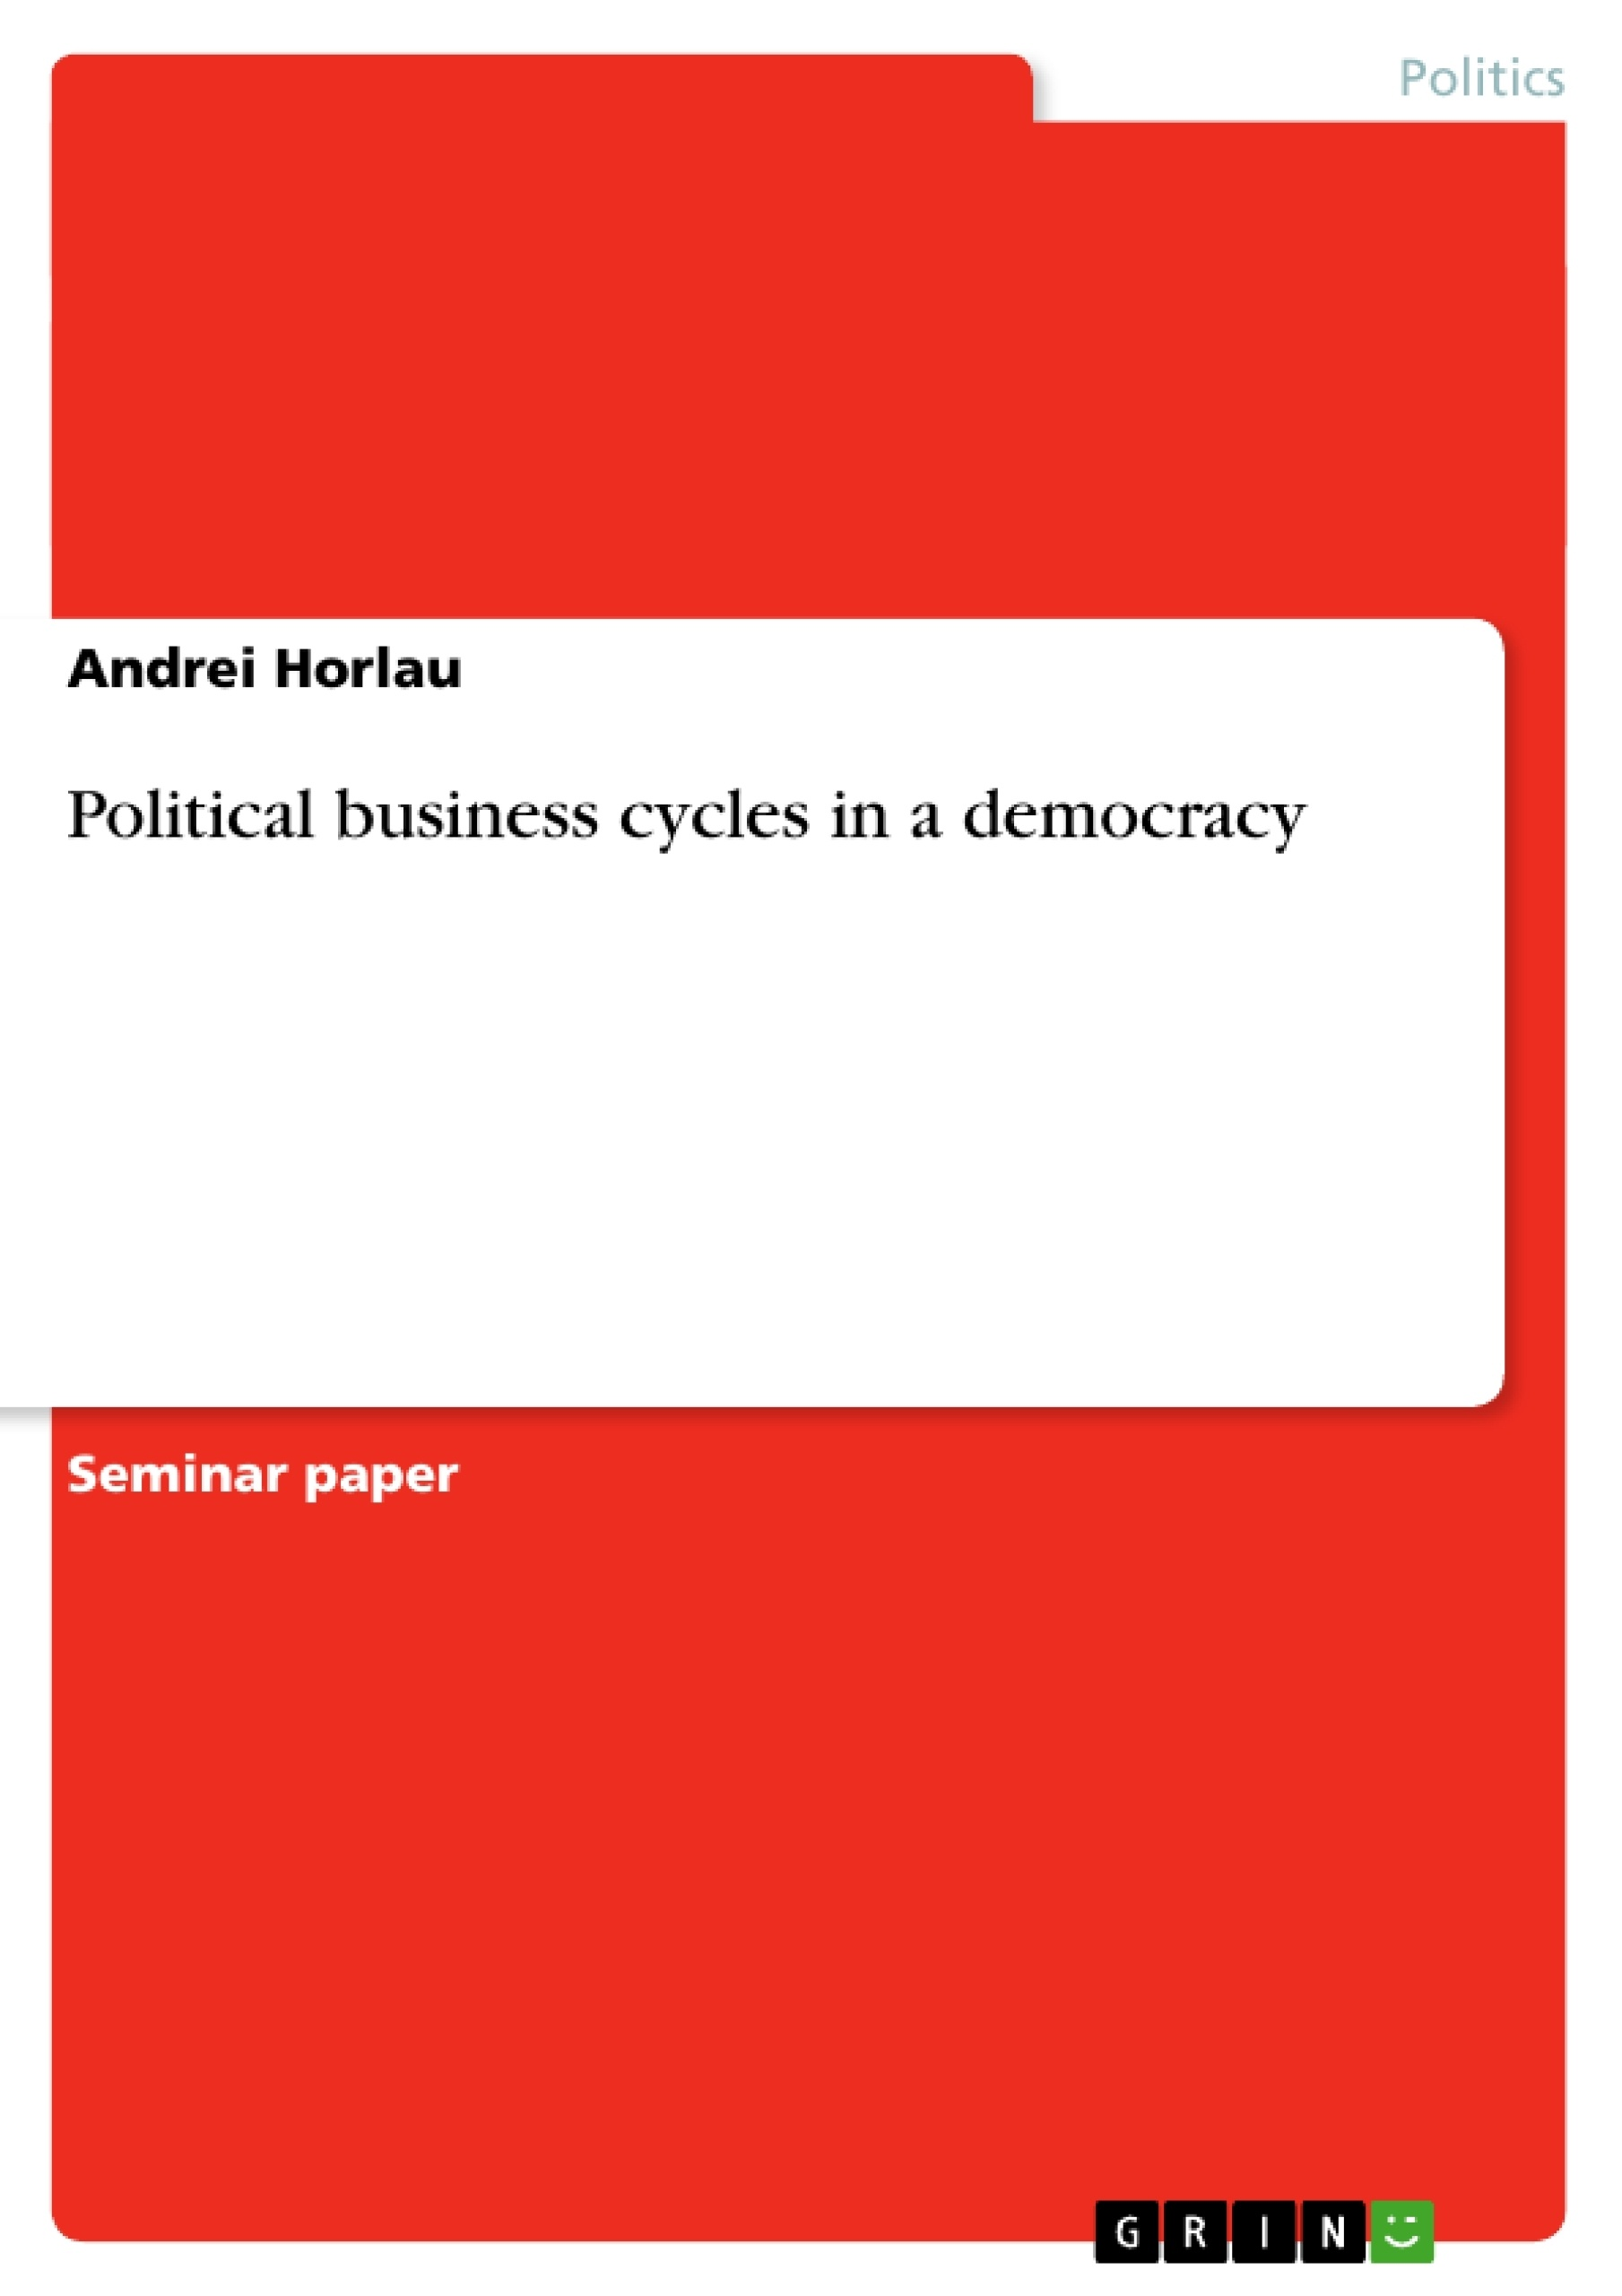 Title: Political business cycles in a democracy